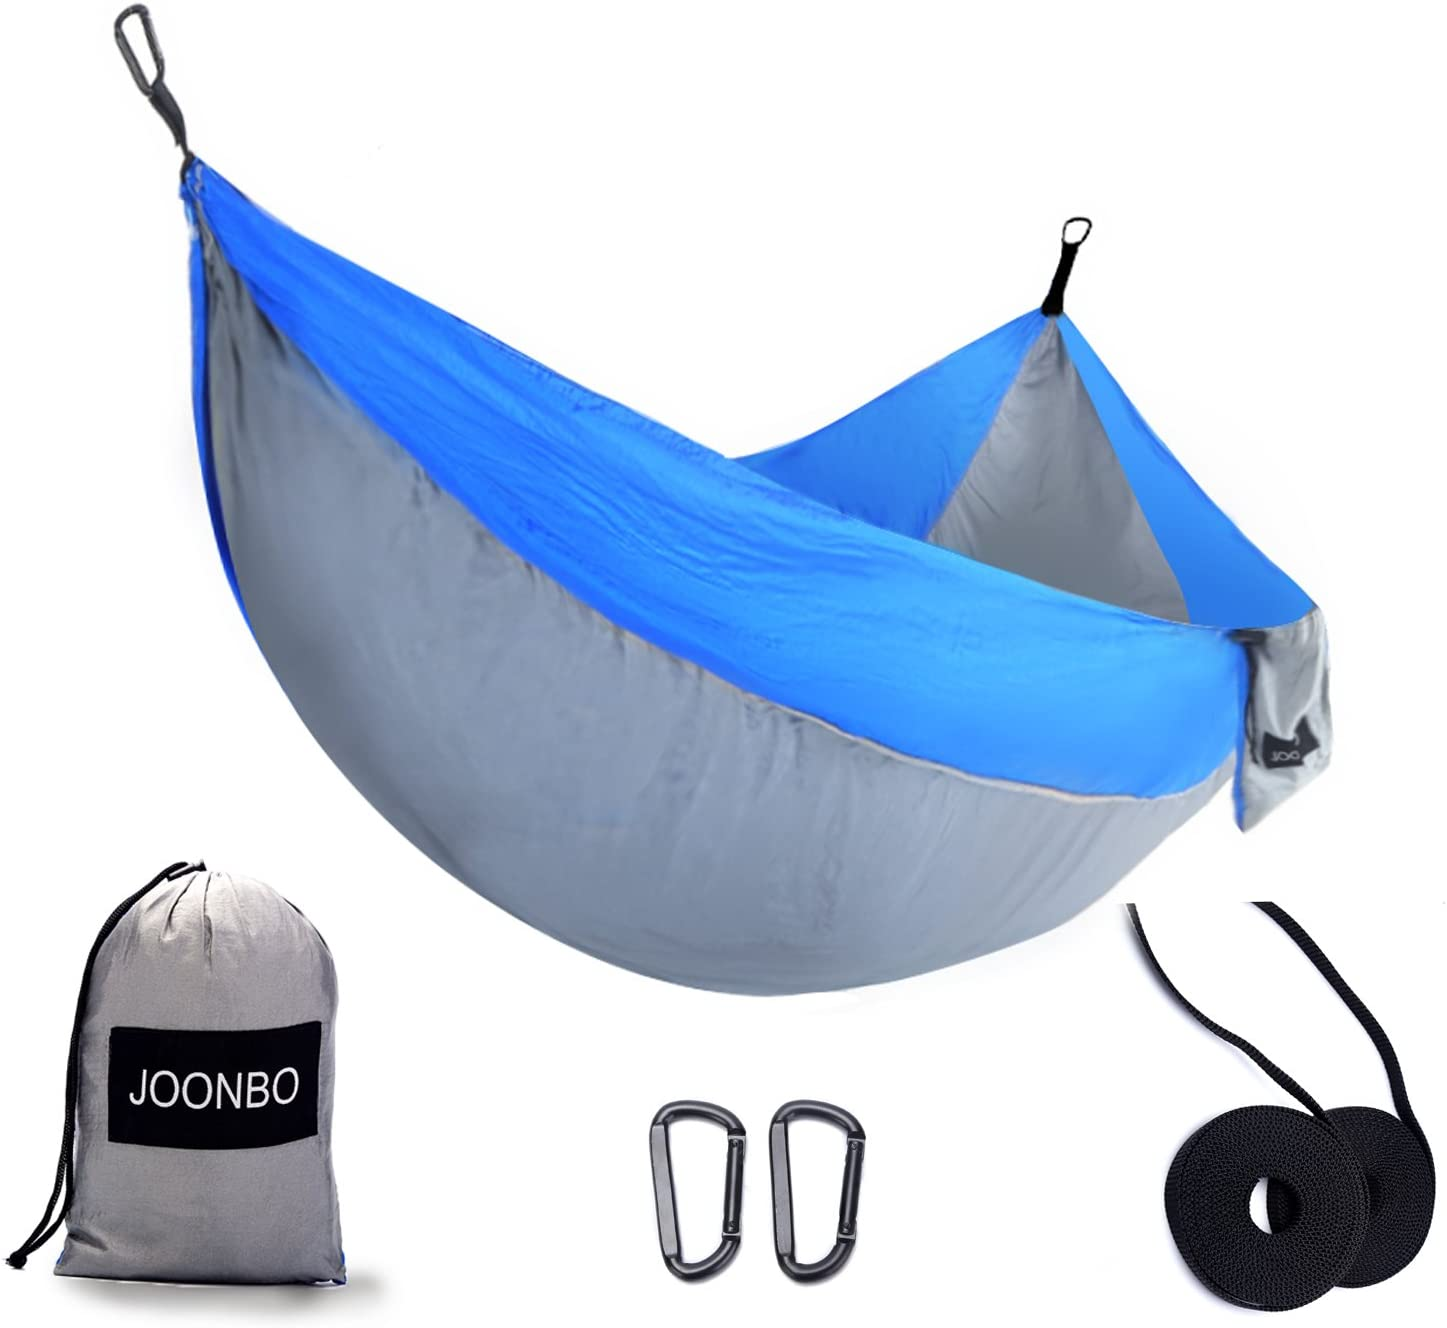 Joonbo Multiple-use Camping Hammock- Outdoors Travel Lightweight Portable Nylon Parachute Multifunctional Hammocks for Backpacking, Beach, Yard, Hiking with Straps